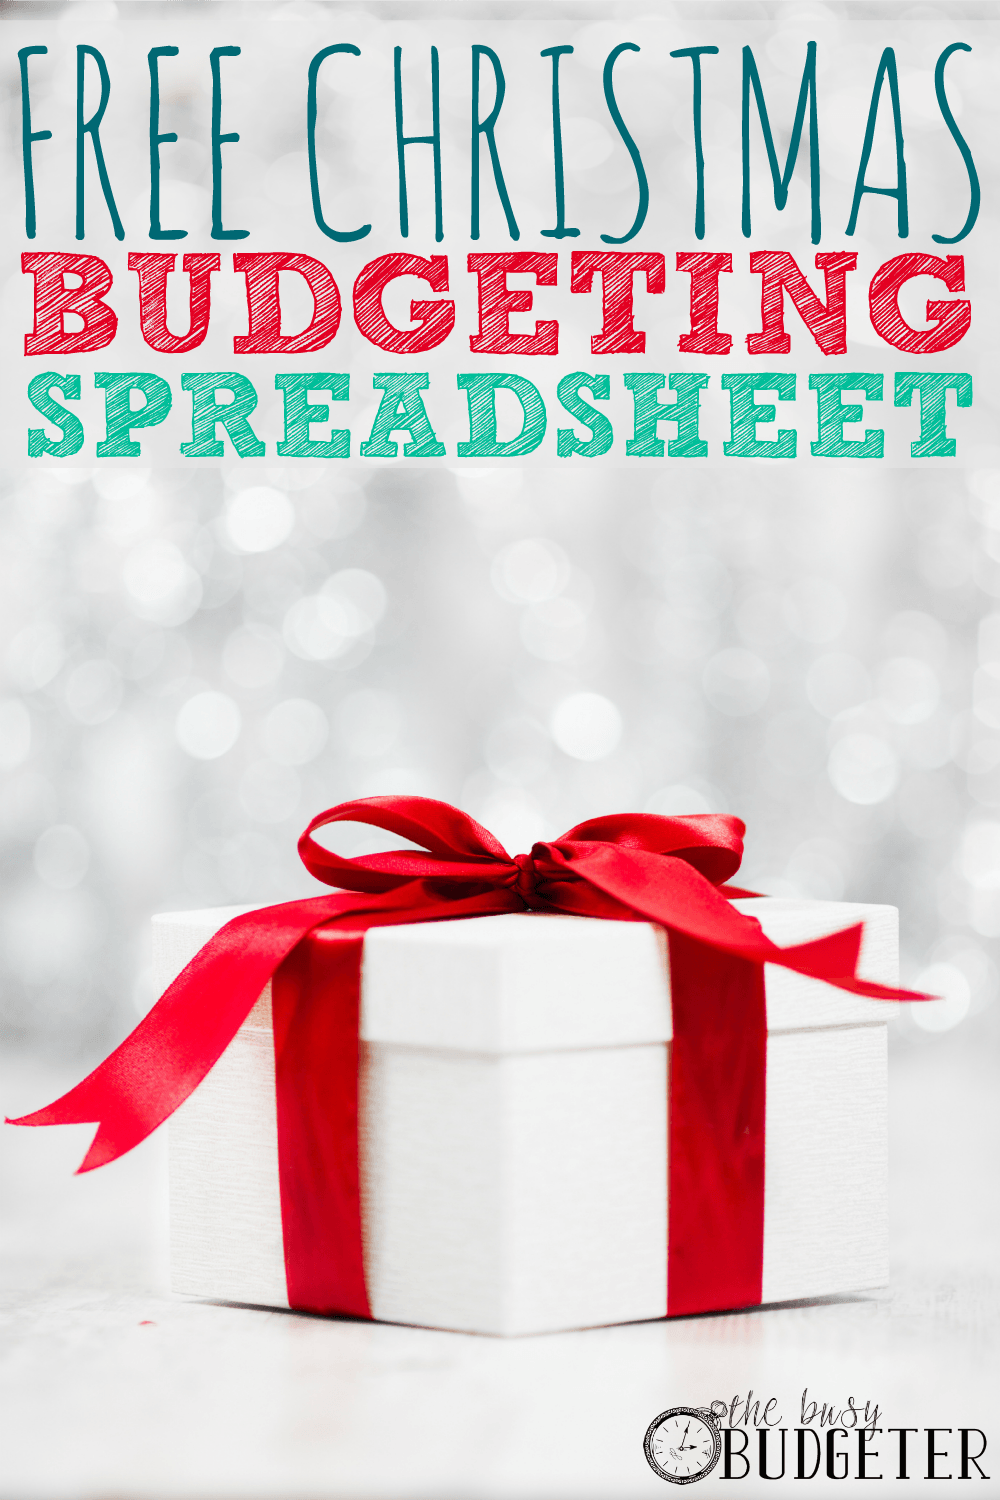 I love this idea! A budgeting spreadsheet for Christmas and super helpful tips on how to make the holidays more affordable. It's nice to know we're not the only ones who struggle this time of year.